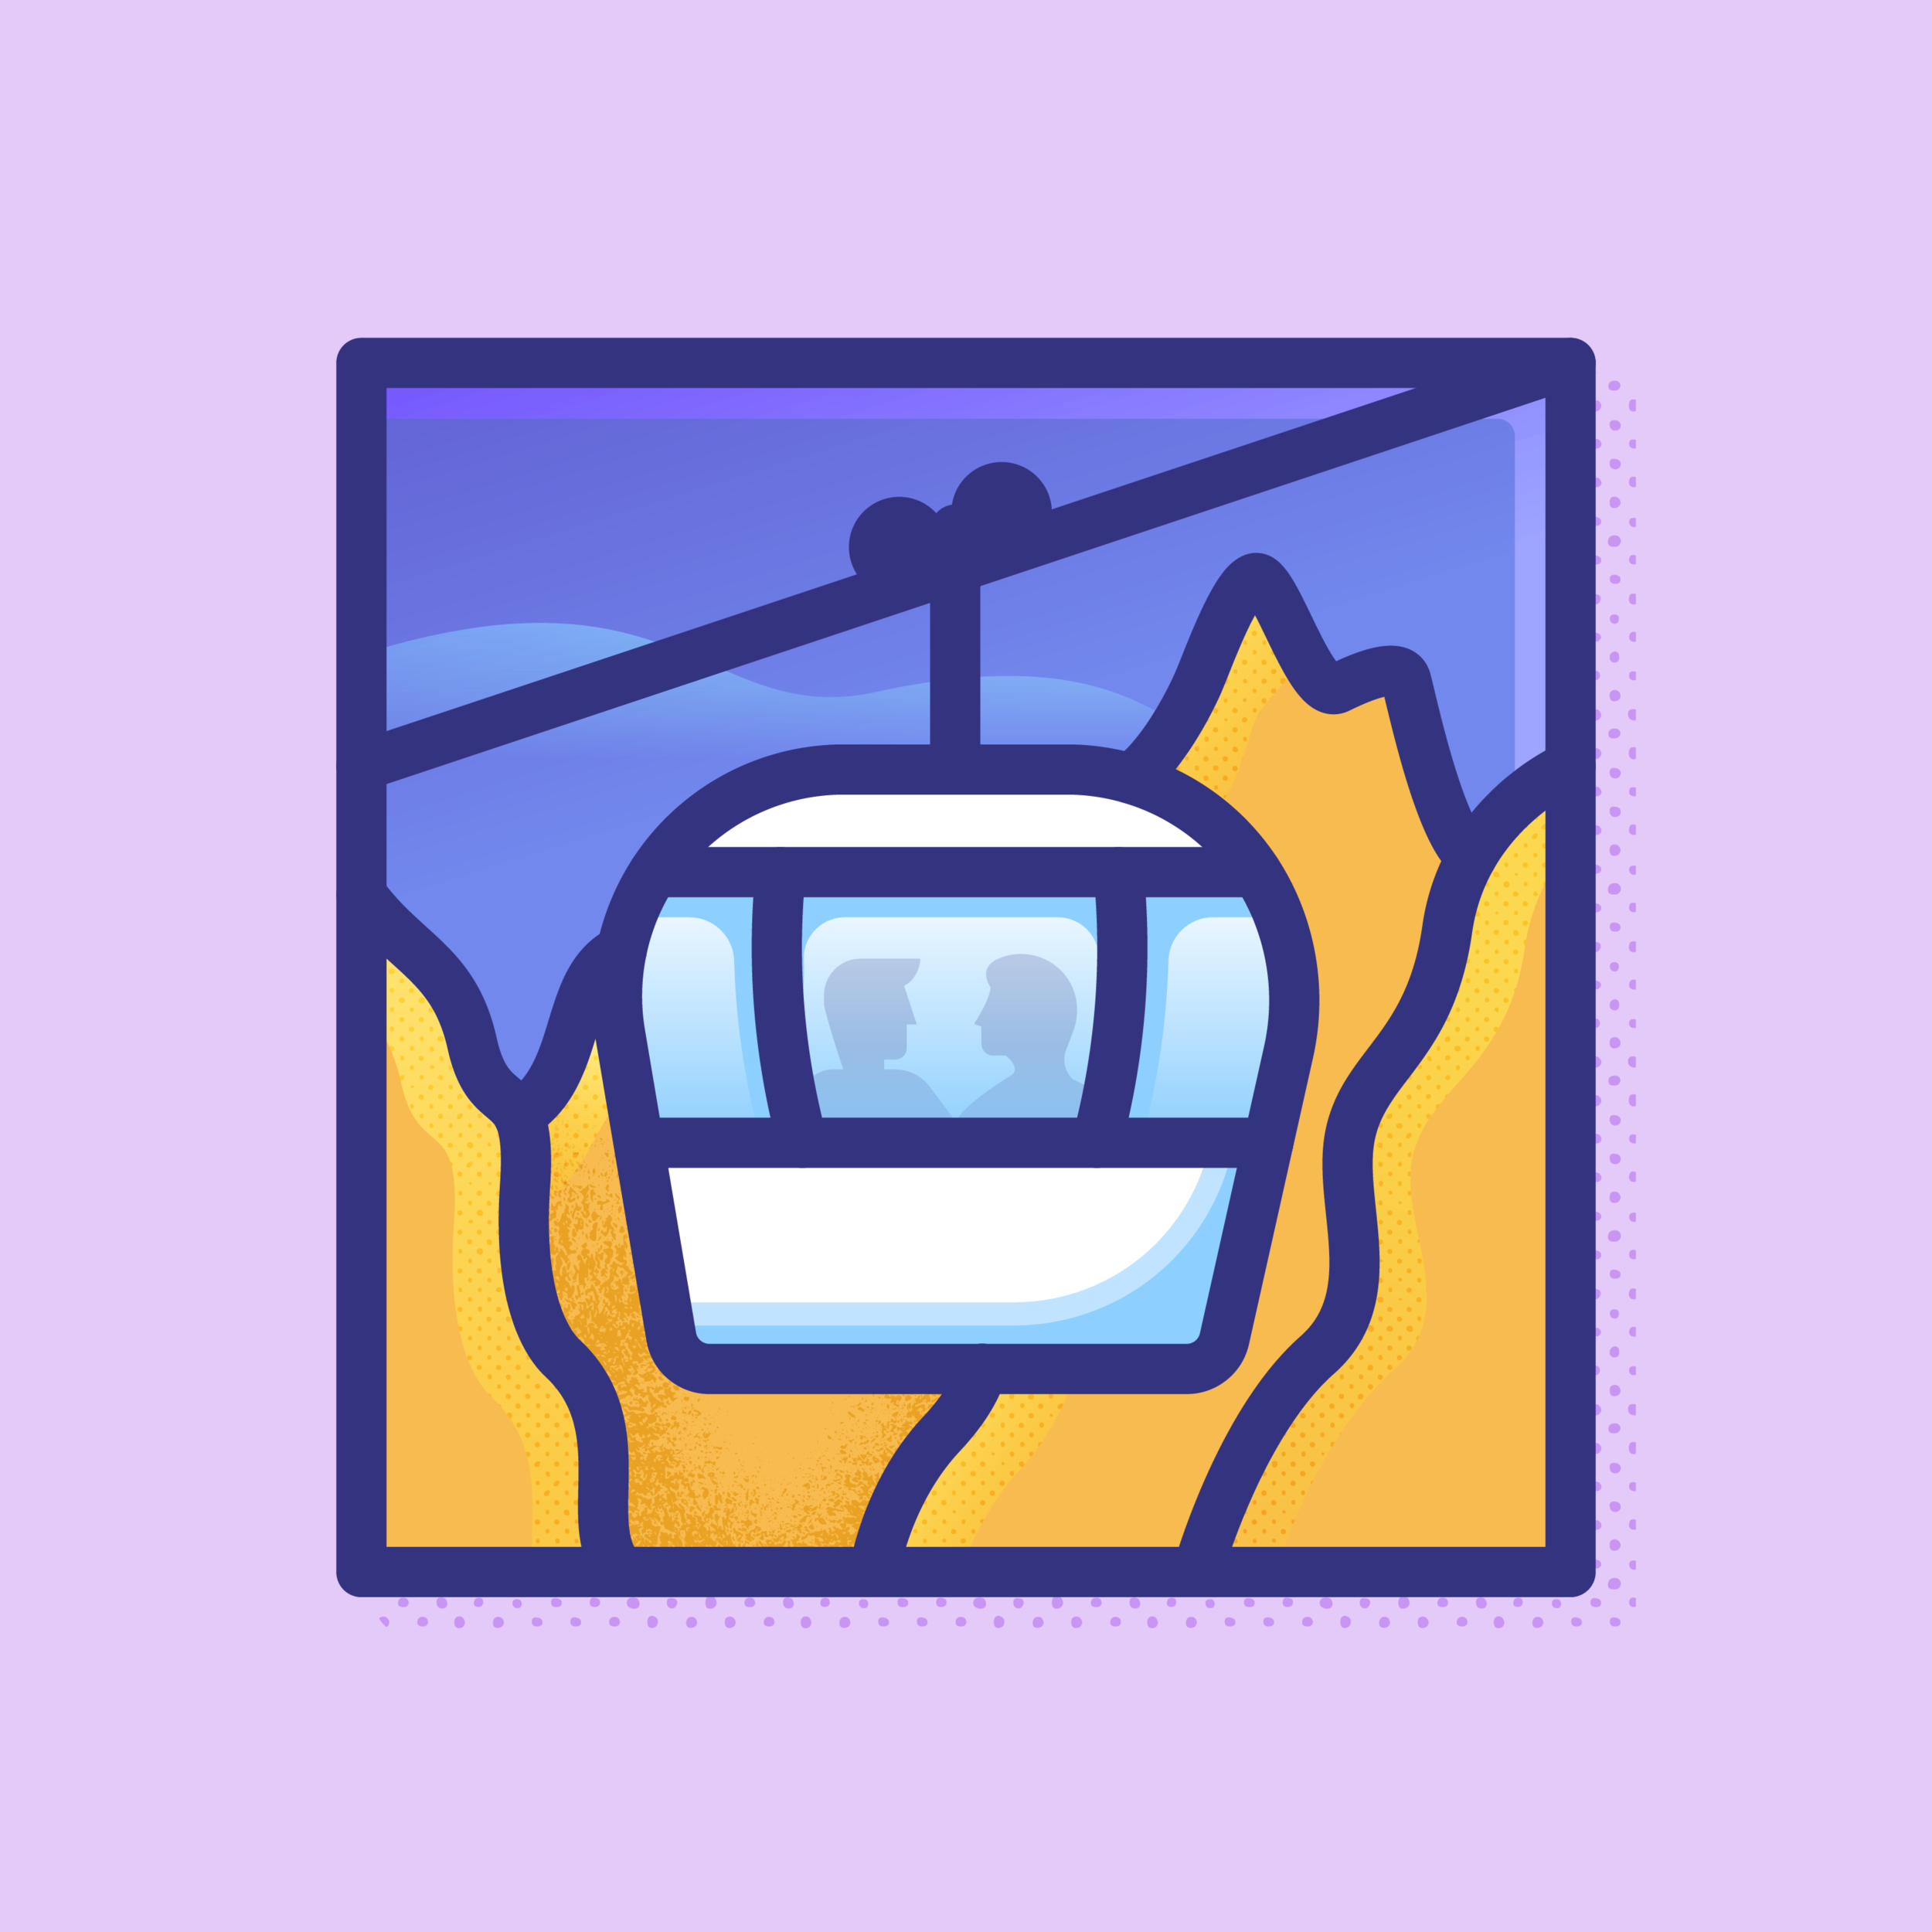 007 cablewayIG.png